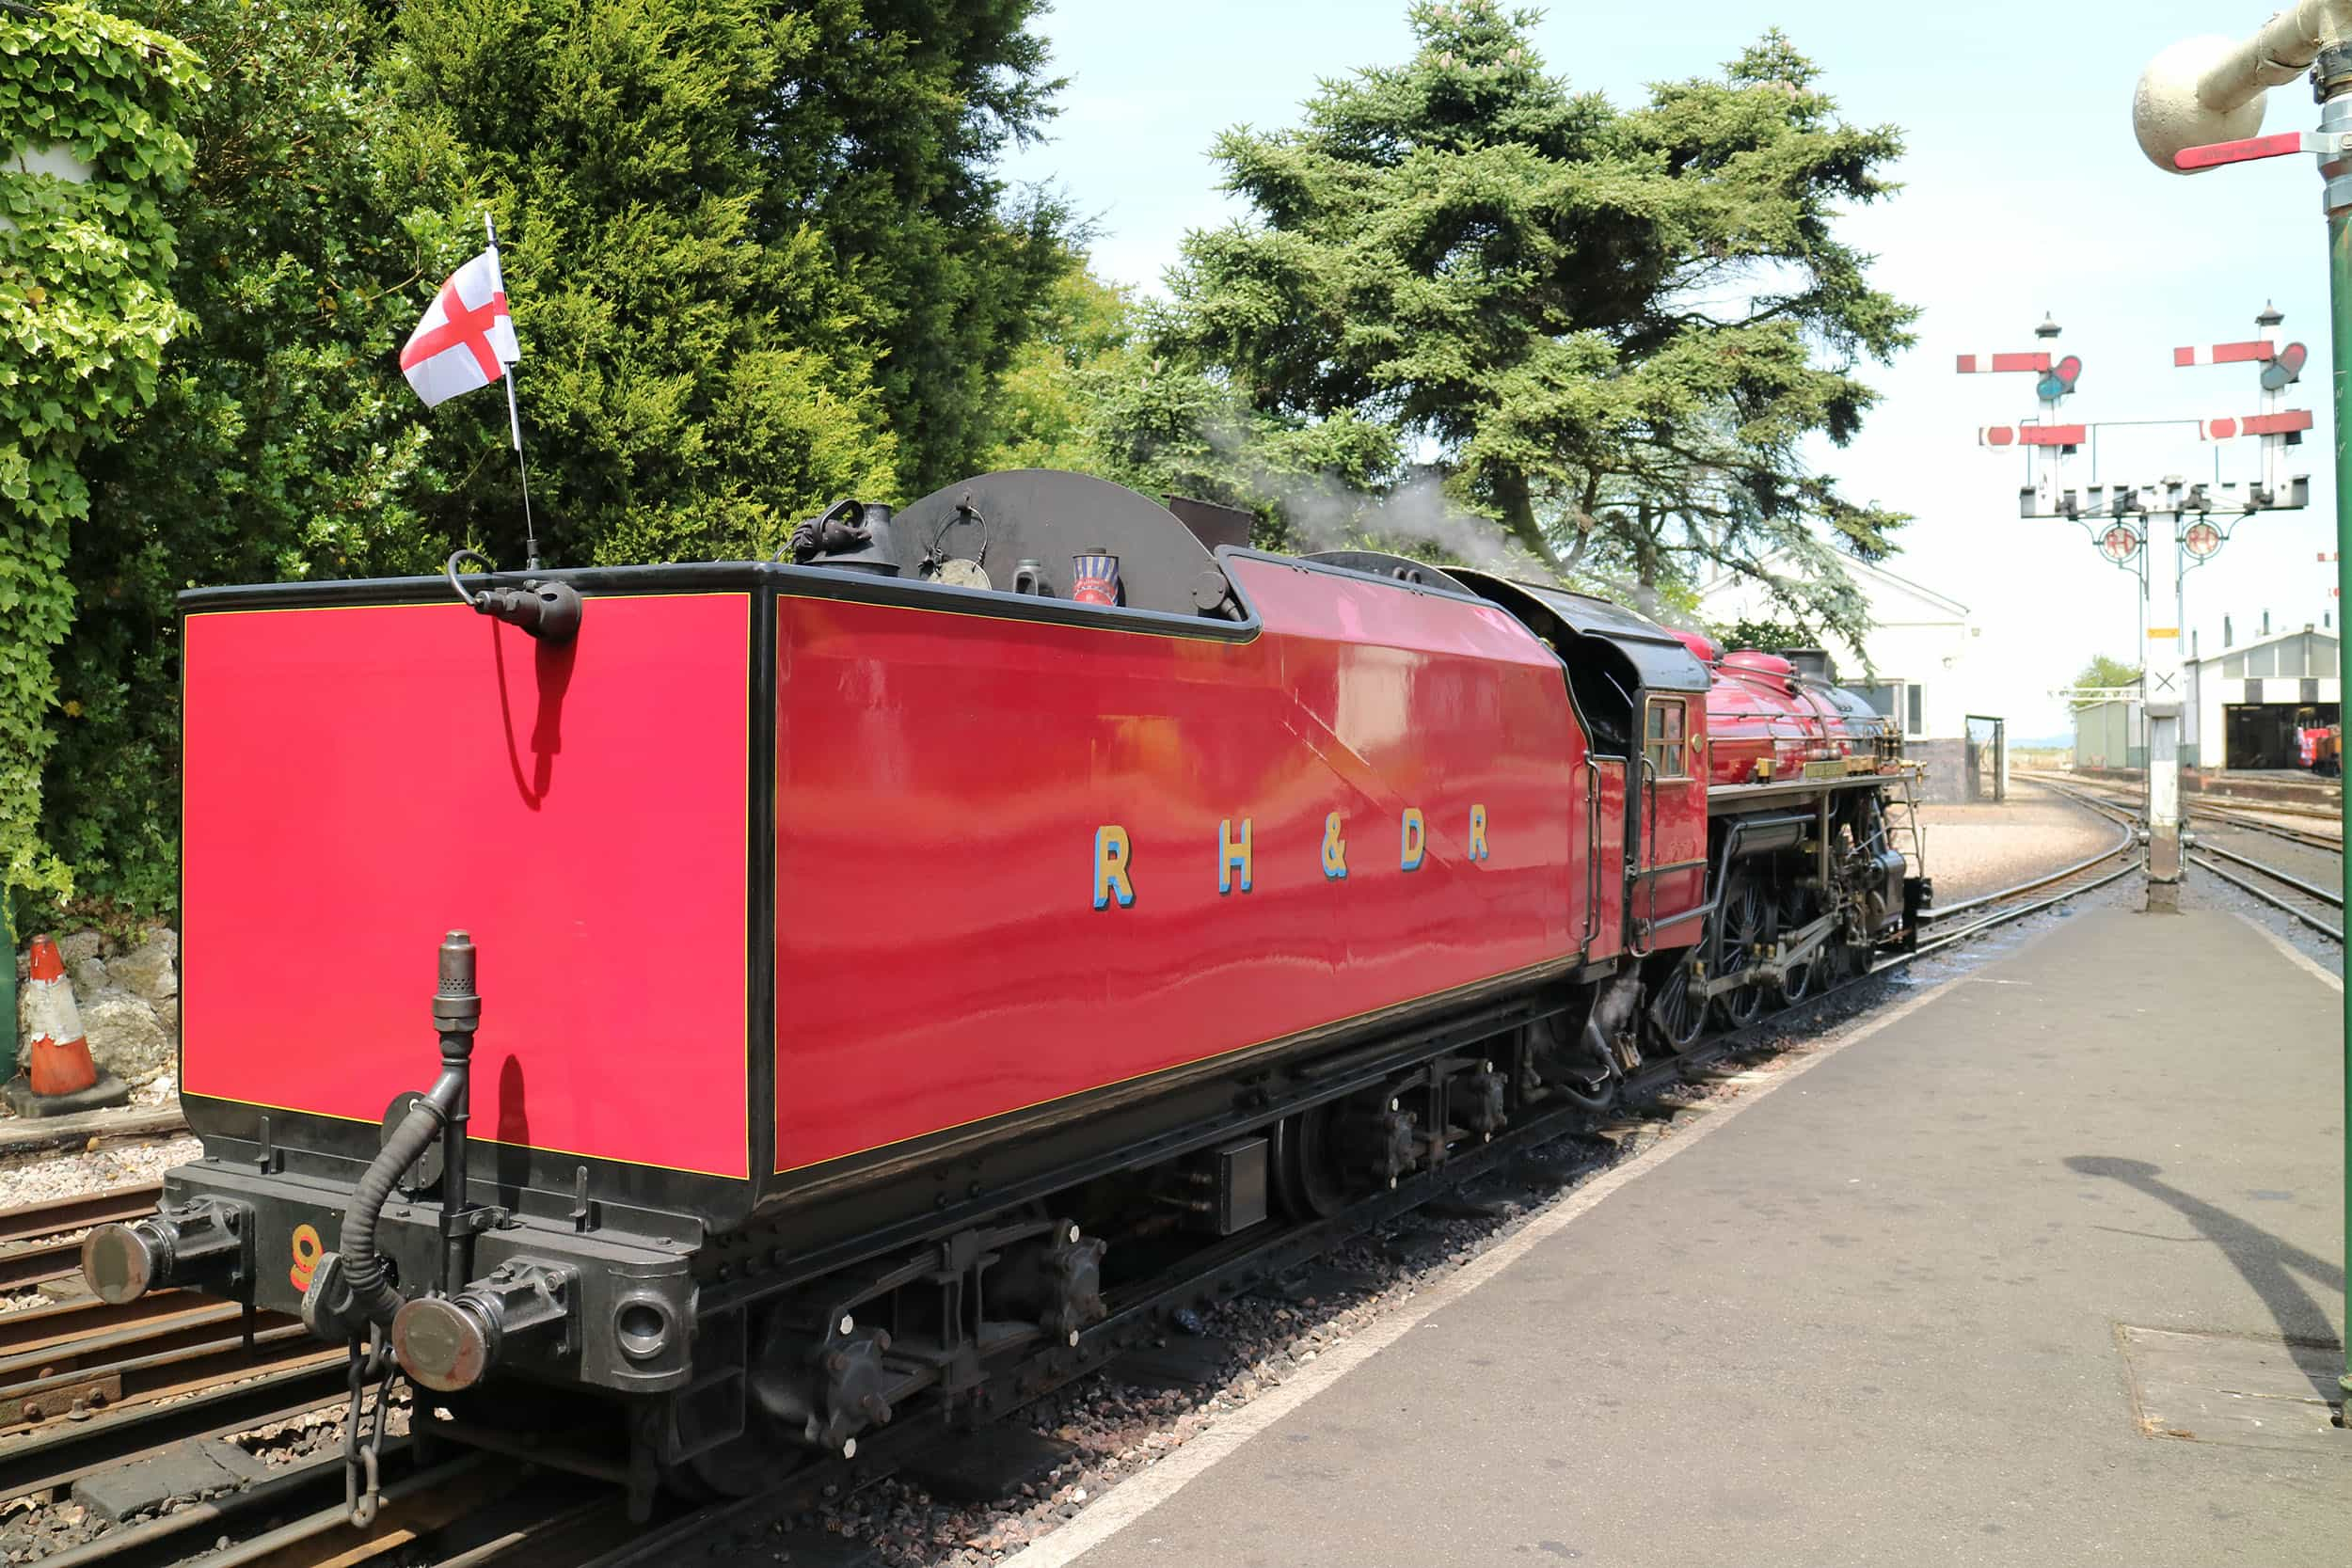 Special Events at Romney, Hythe & Dymchurch Railway